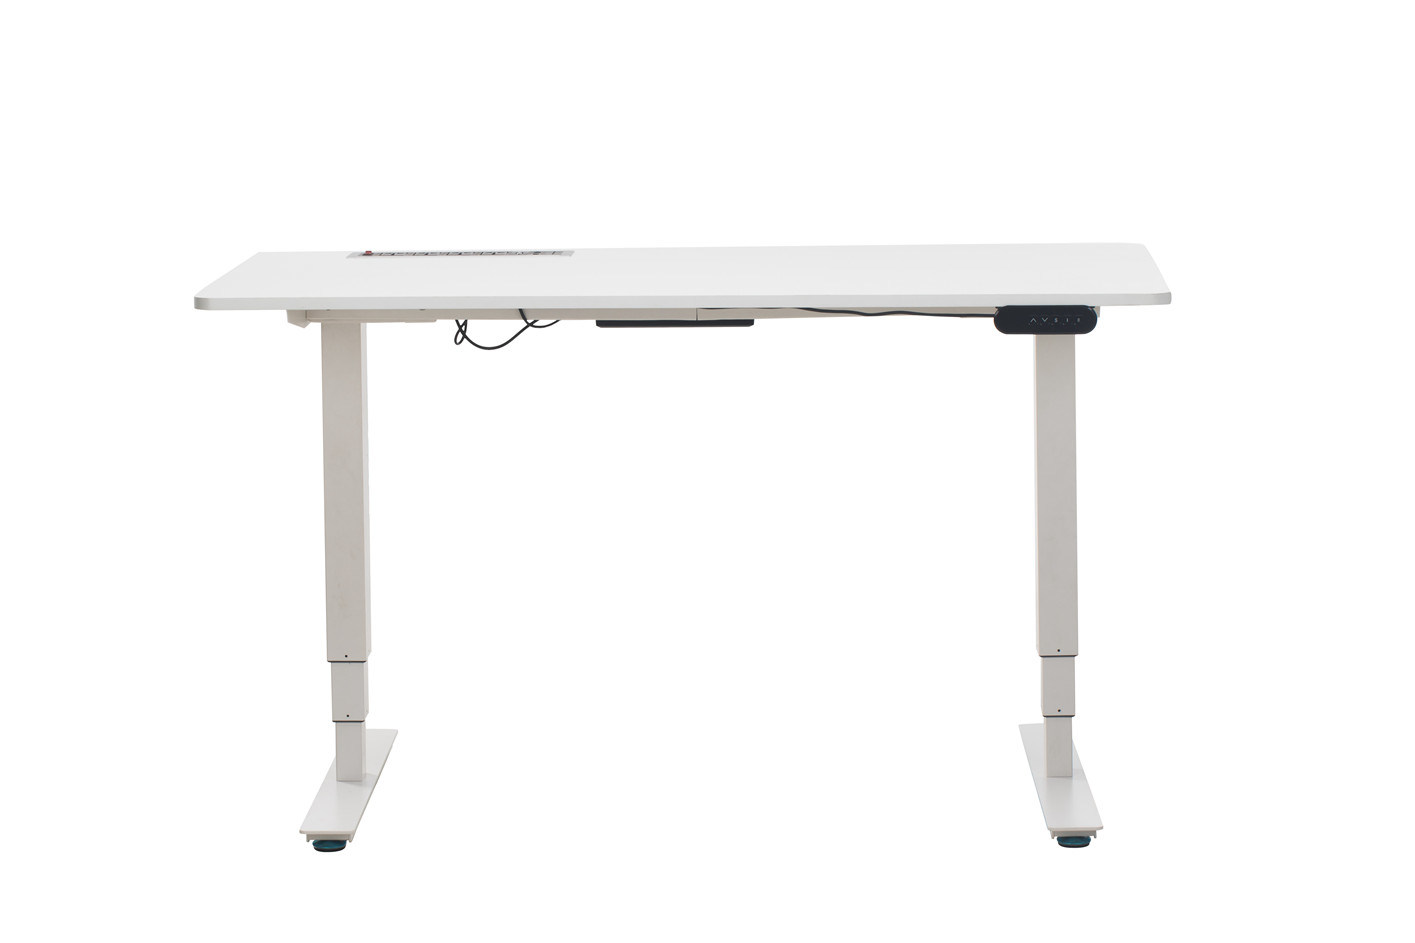 China Gaming Height Adjustable Desk 2 Legs Electric Height Adjustable Sit Stand Office Desk China Gaming Height Adjustable Desk Electric Desk Adjustable Height